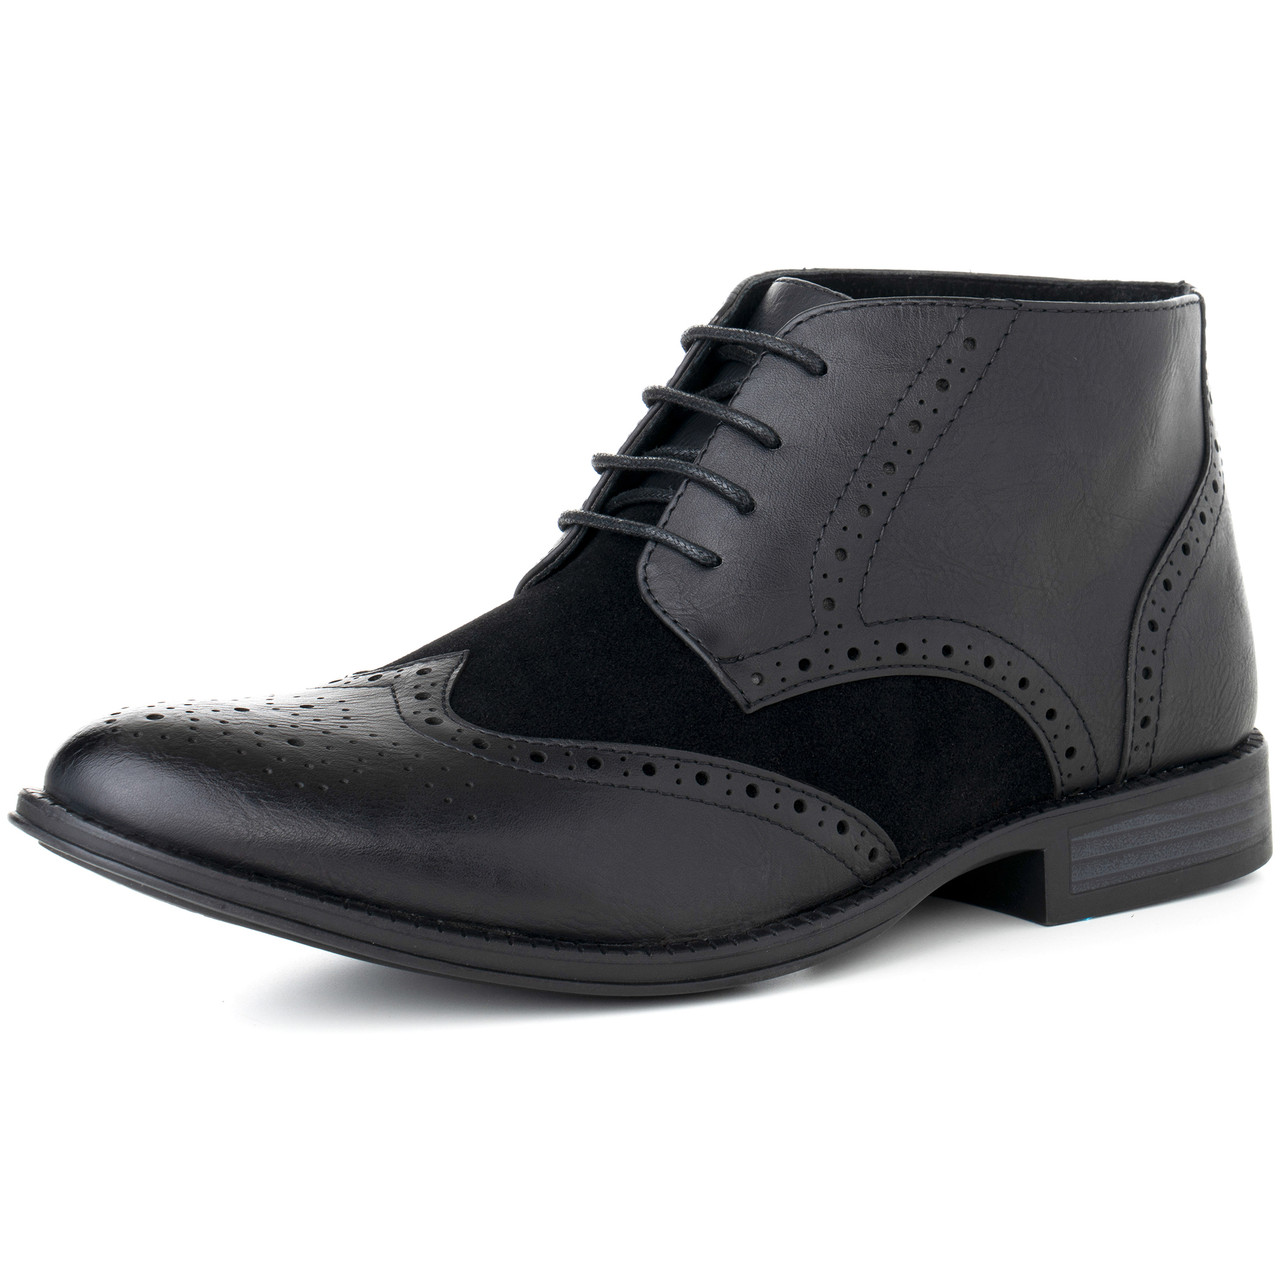 ed02a98df5d Alpine Swiss Geneva Mens Ankle Boots Lace Up TwoTone Brogue Wing Tip Dress  Shoes